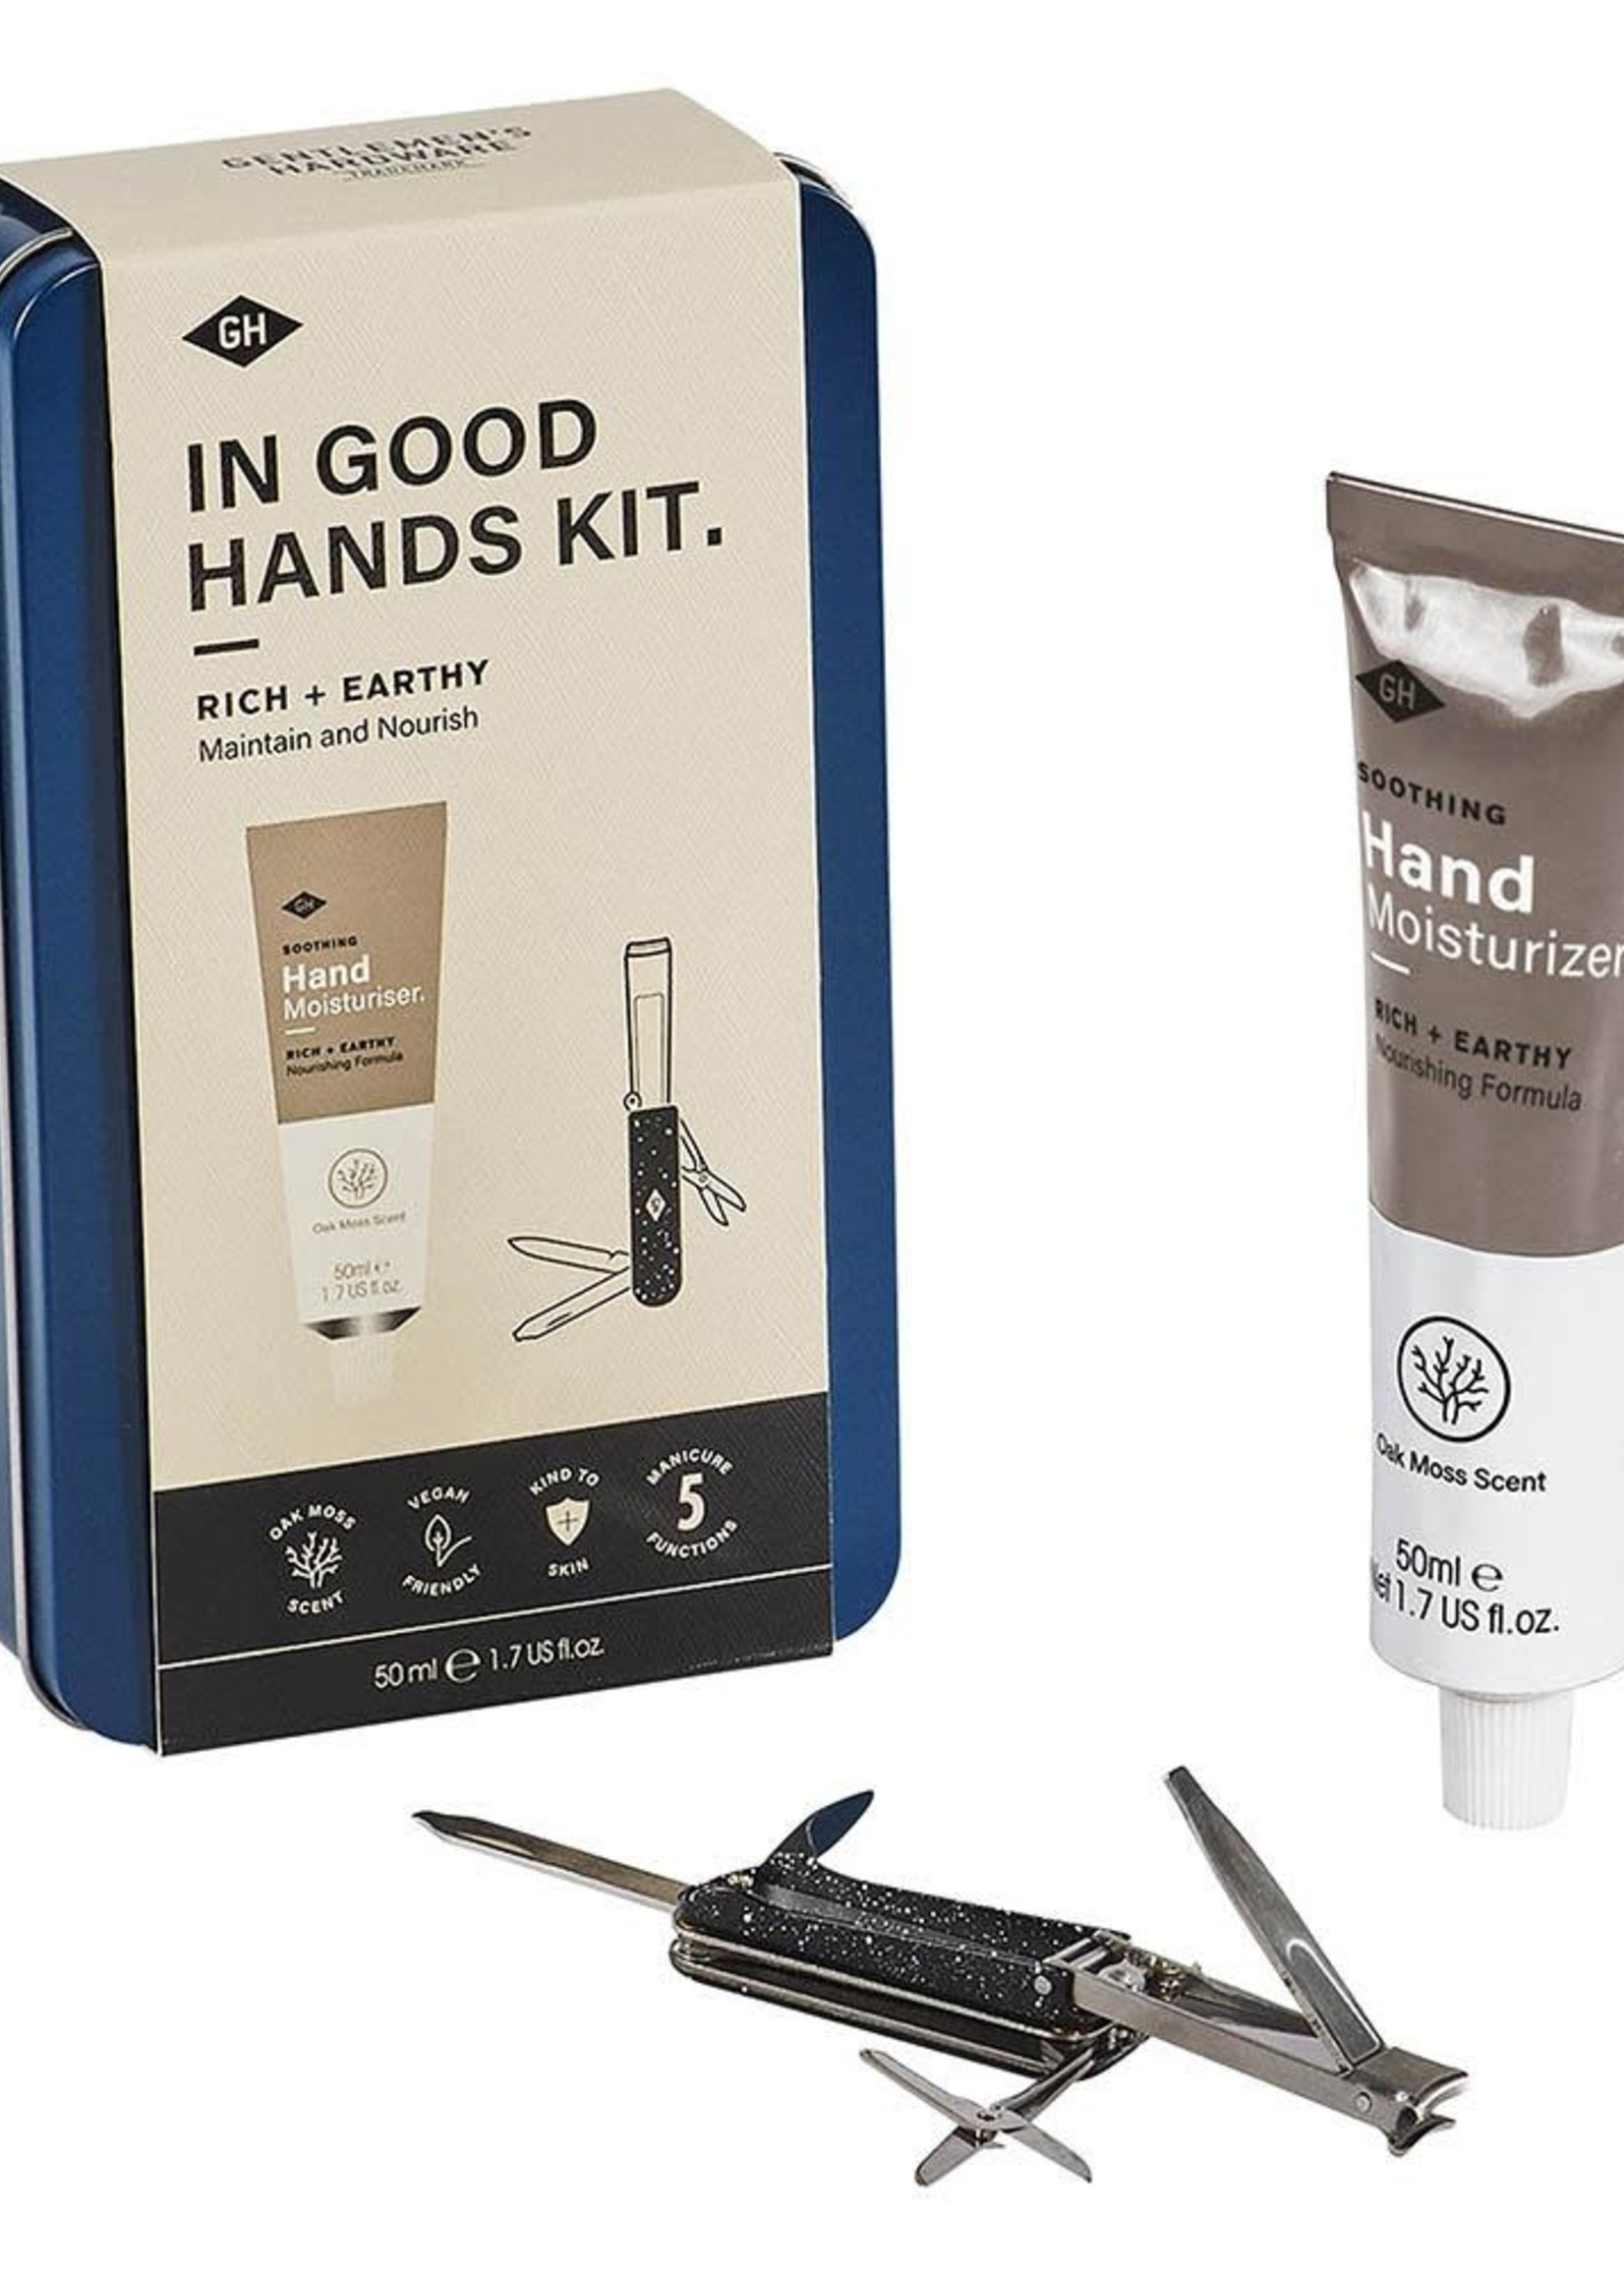 GENTLEMEN'S HARDWARE GENTLEMEN'S GOOD HANDS KIT